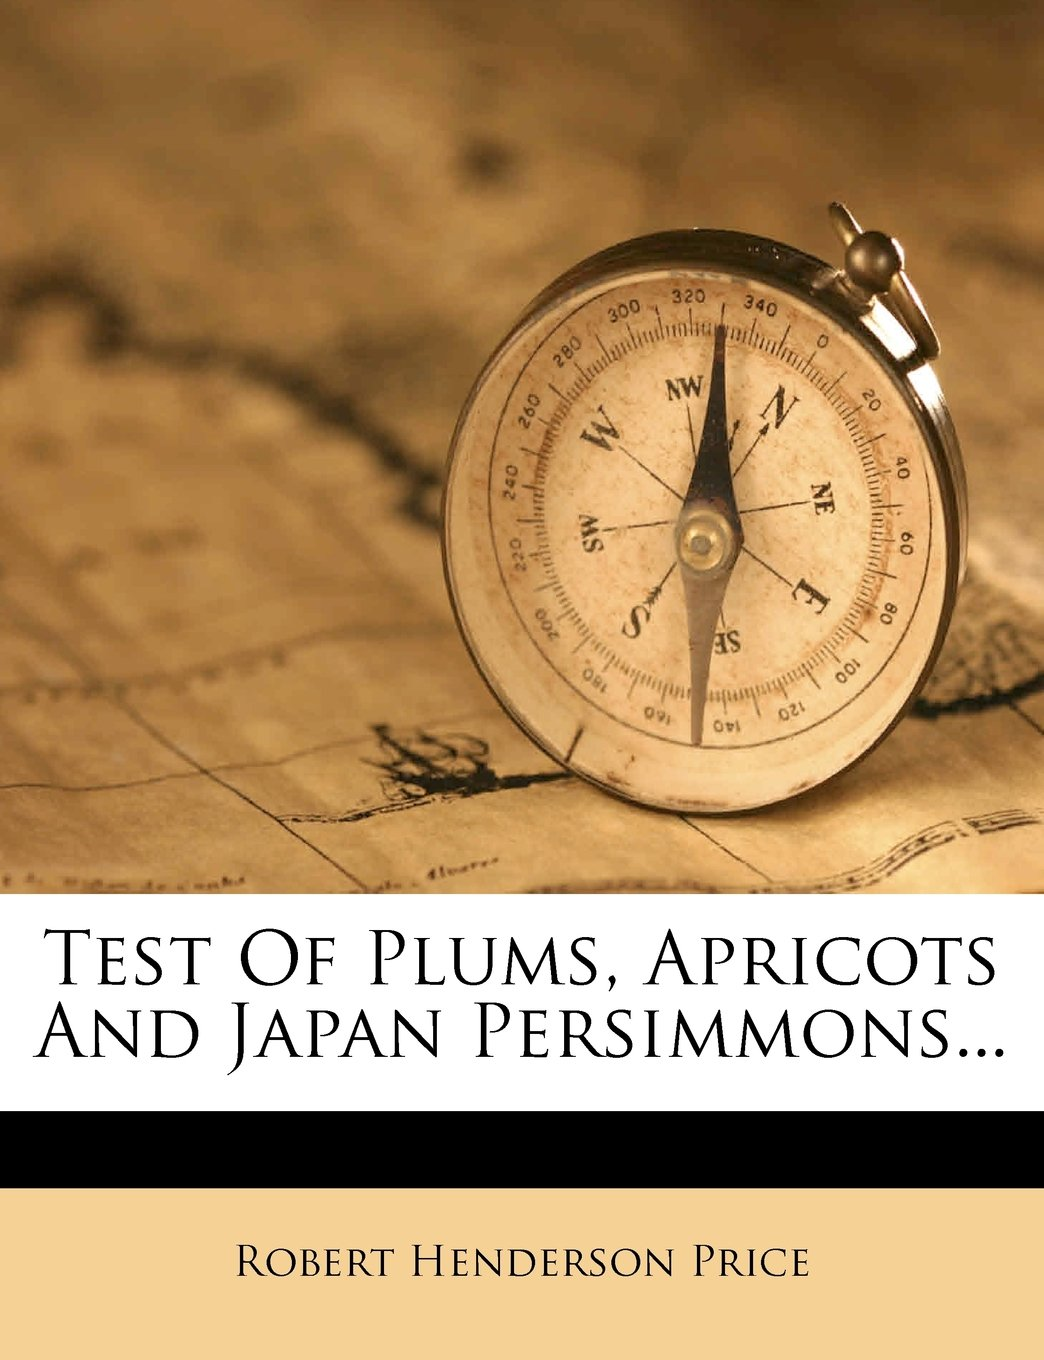 Test Of Plums, Apricots And Japan Persimmons... PDF